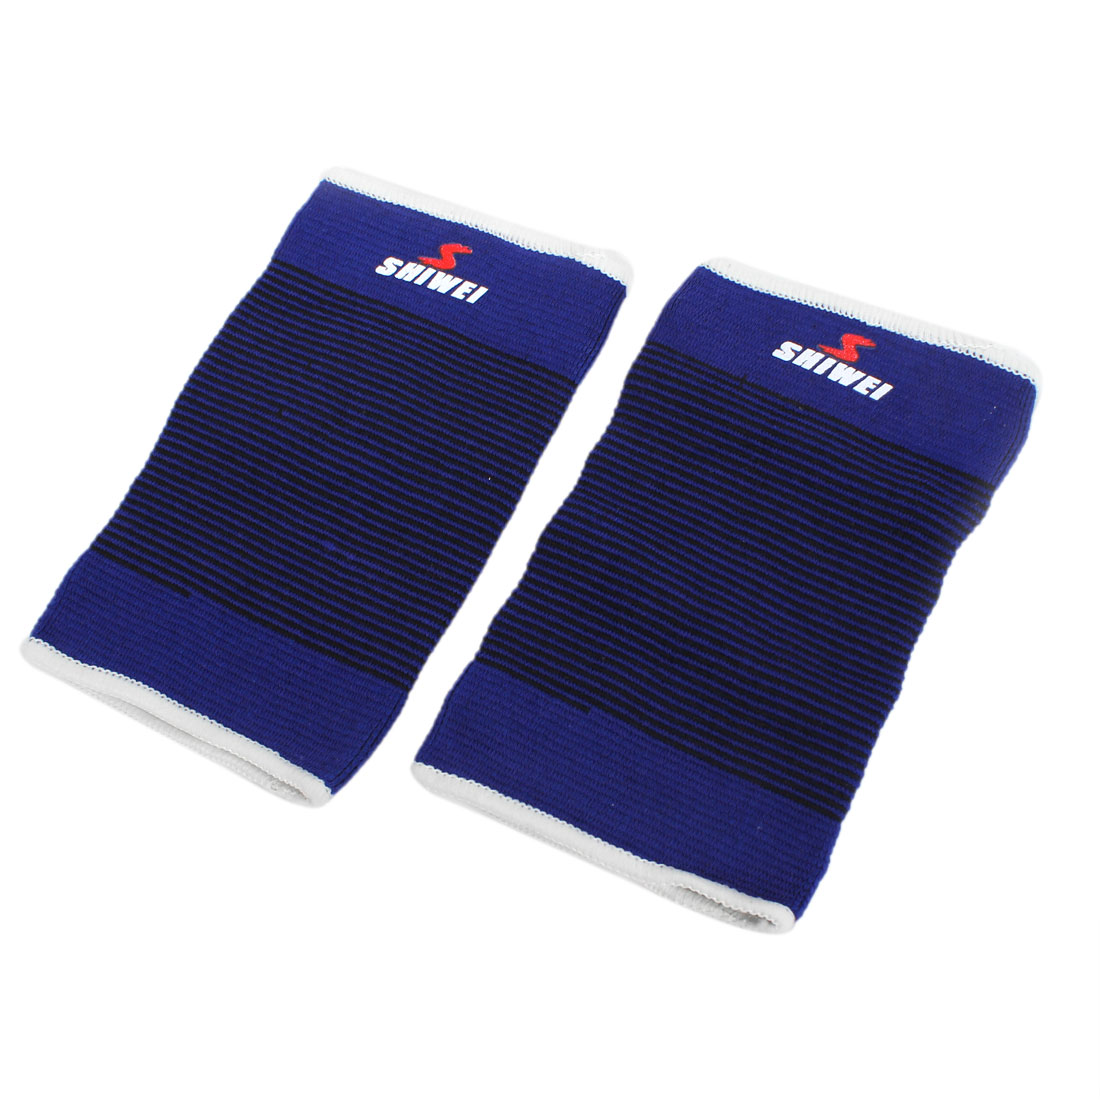 2 x Sports Blue Black Pinstripe Textured Stretchy Knee Support Guard Sleeve